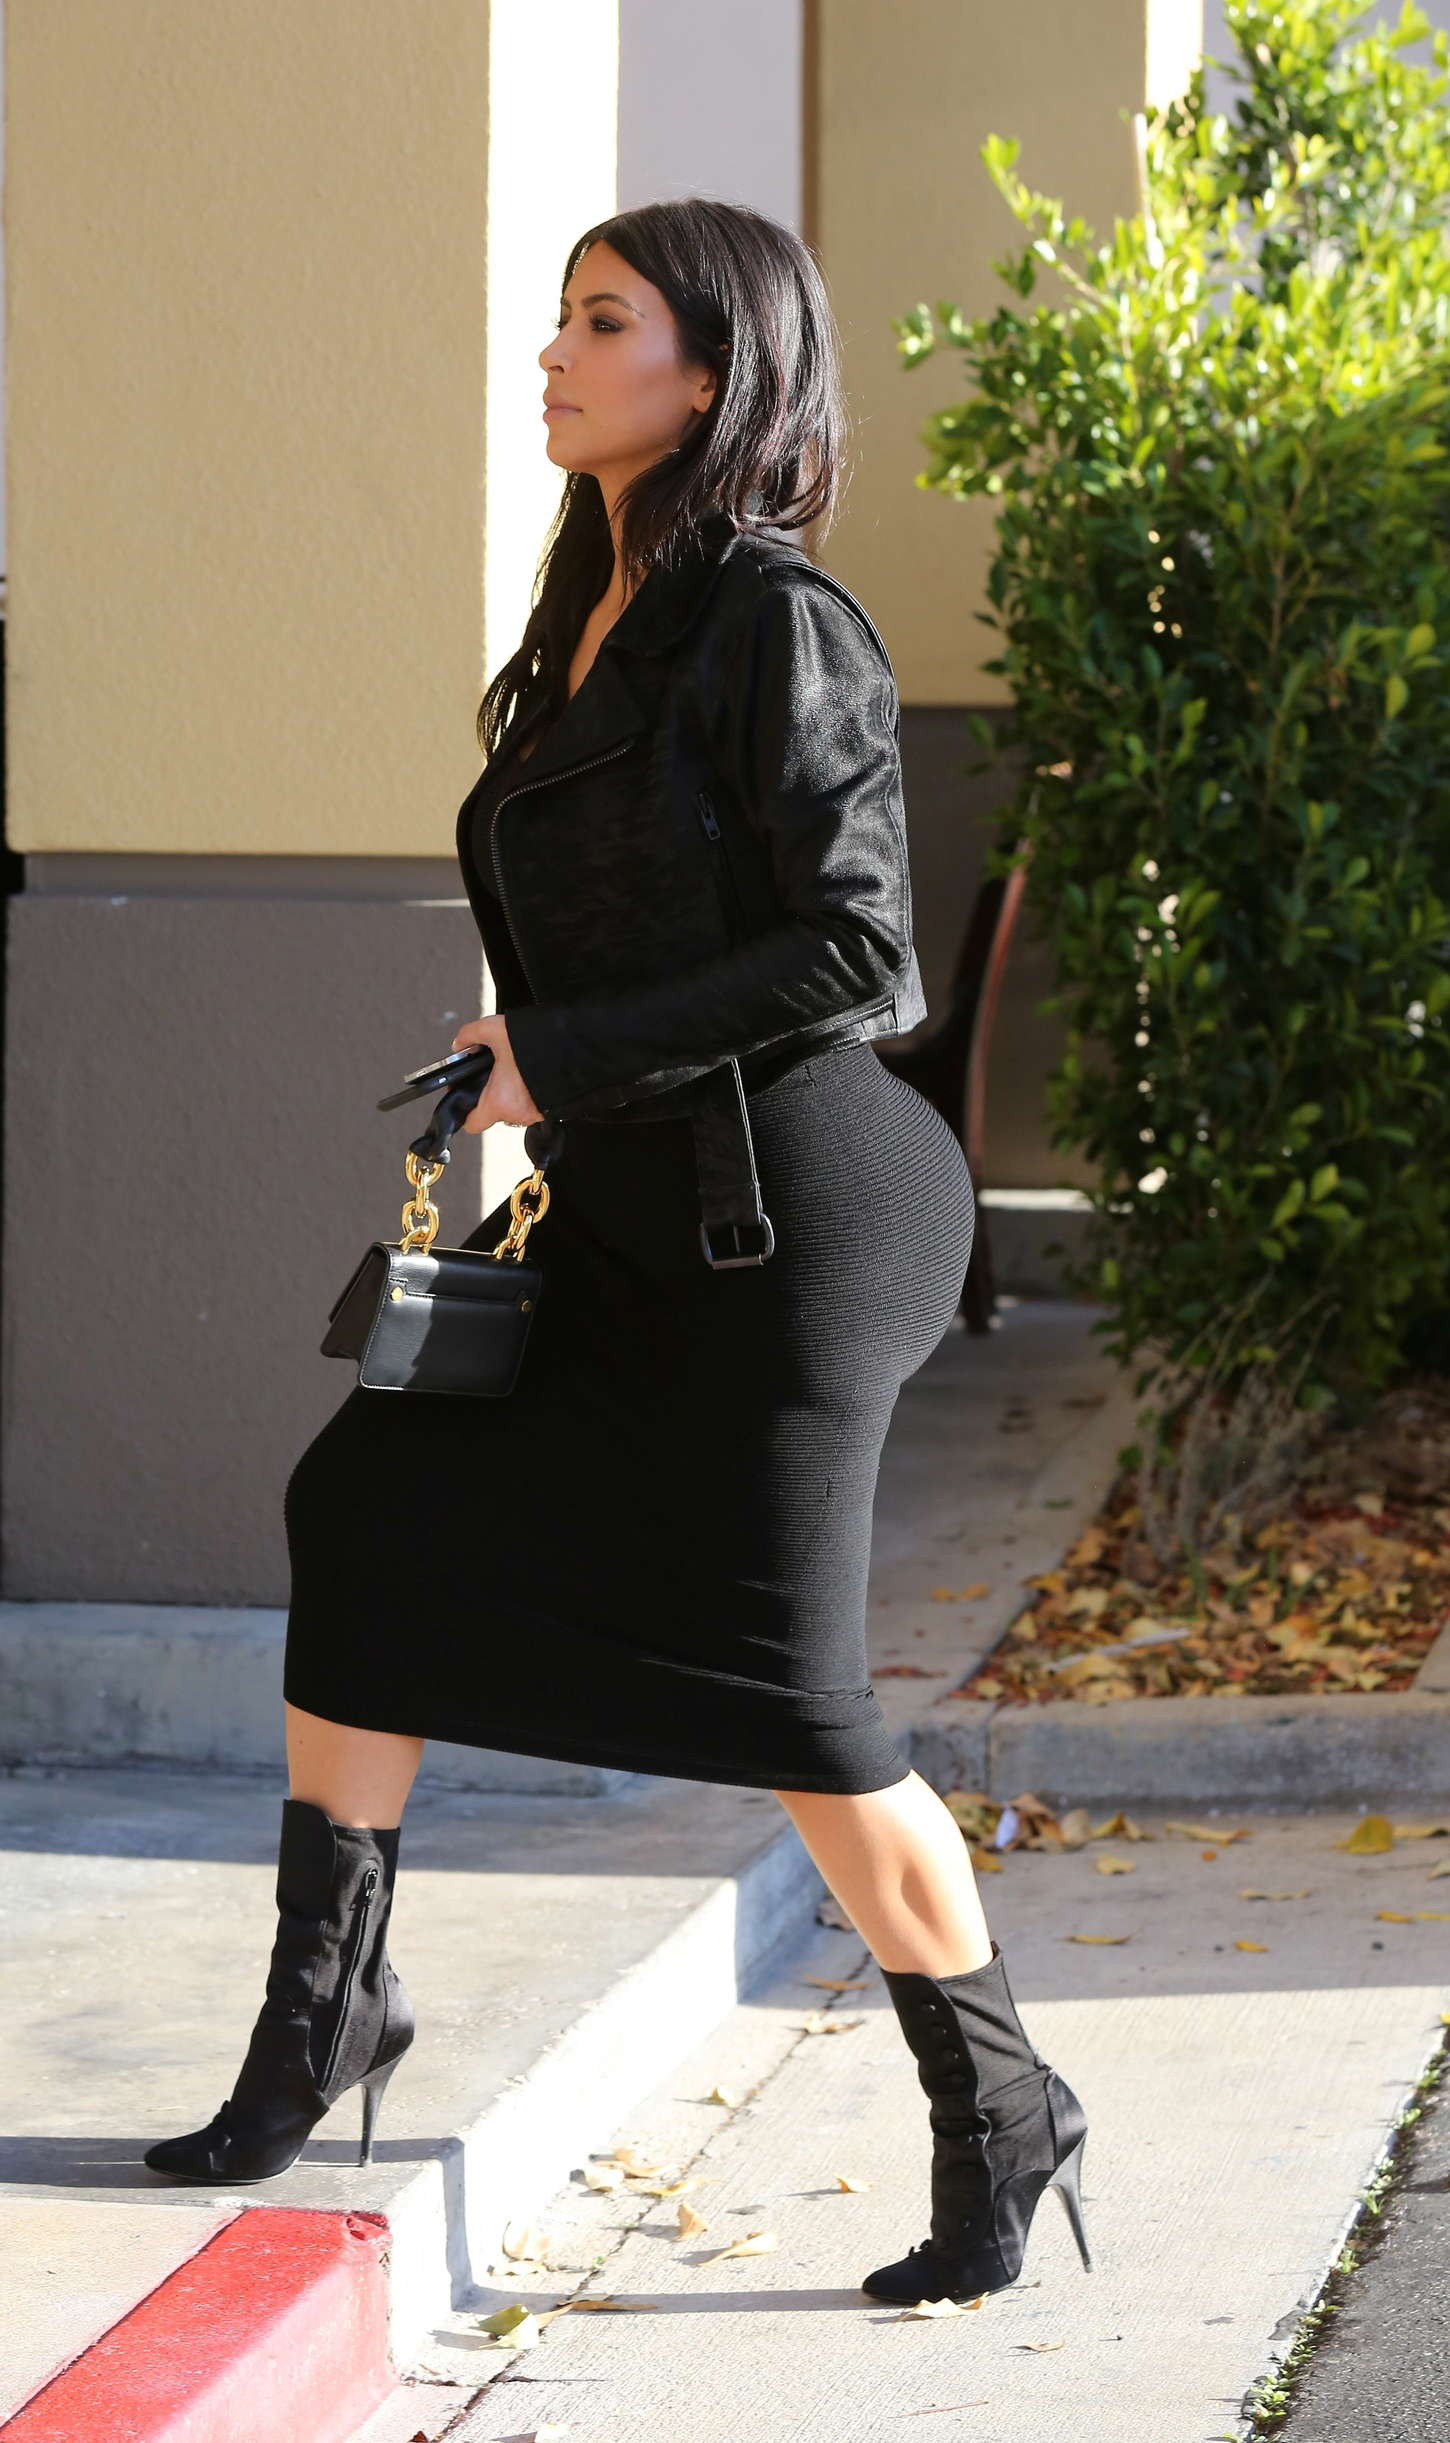 Kim Kardashian In Tight Skirt At Blu Jam Cafe In La